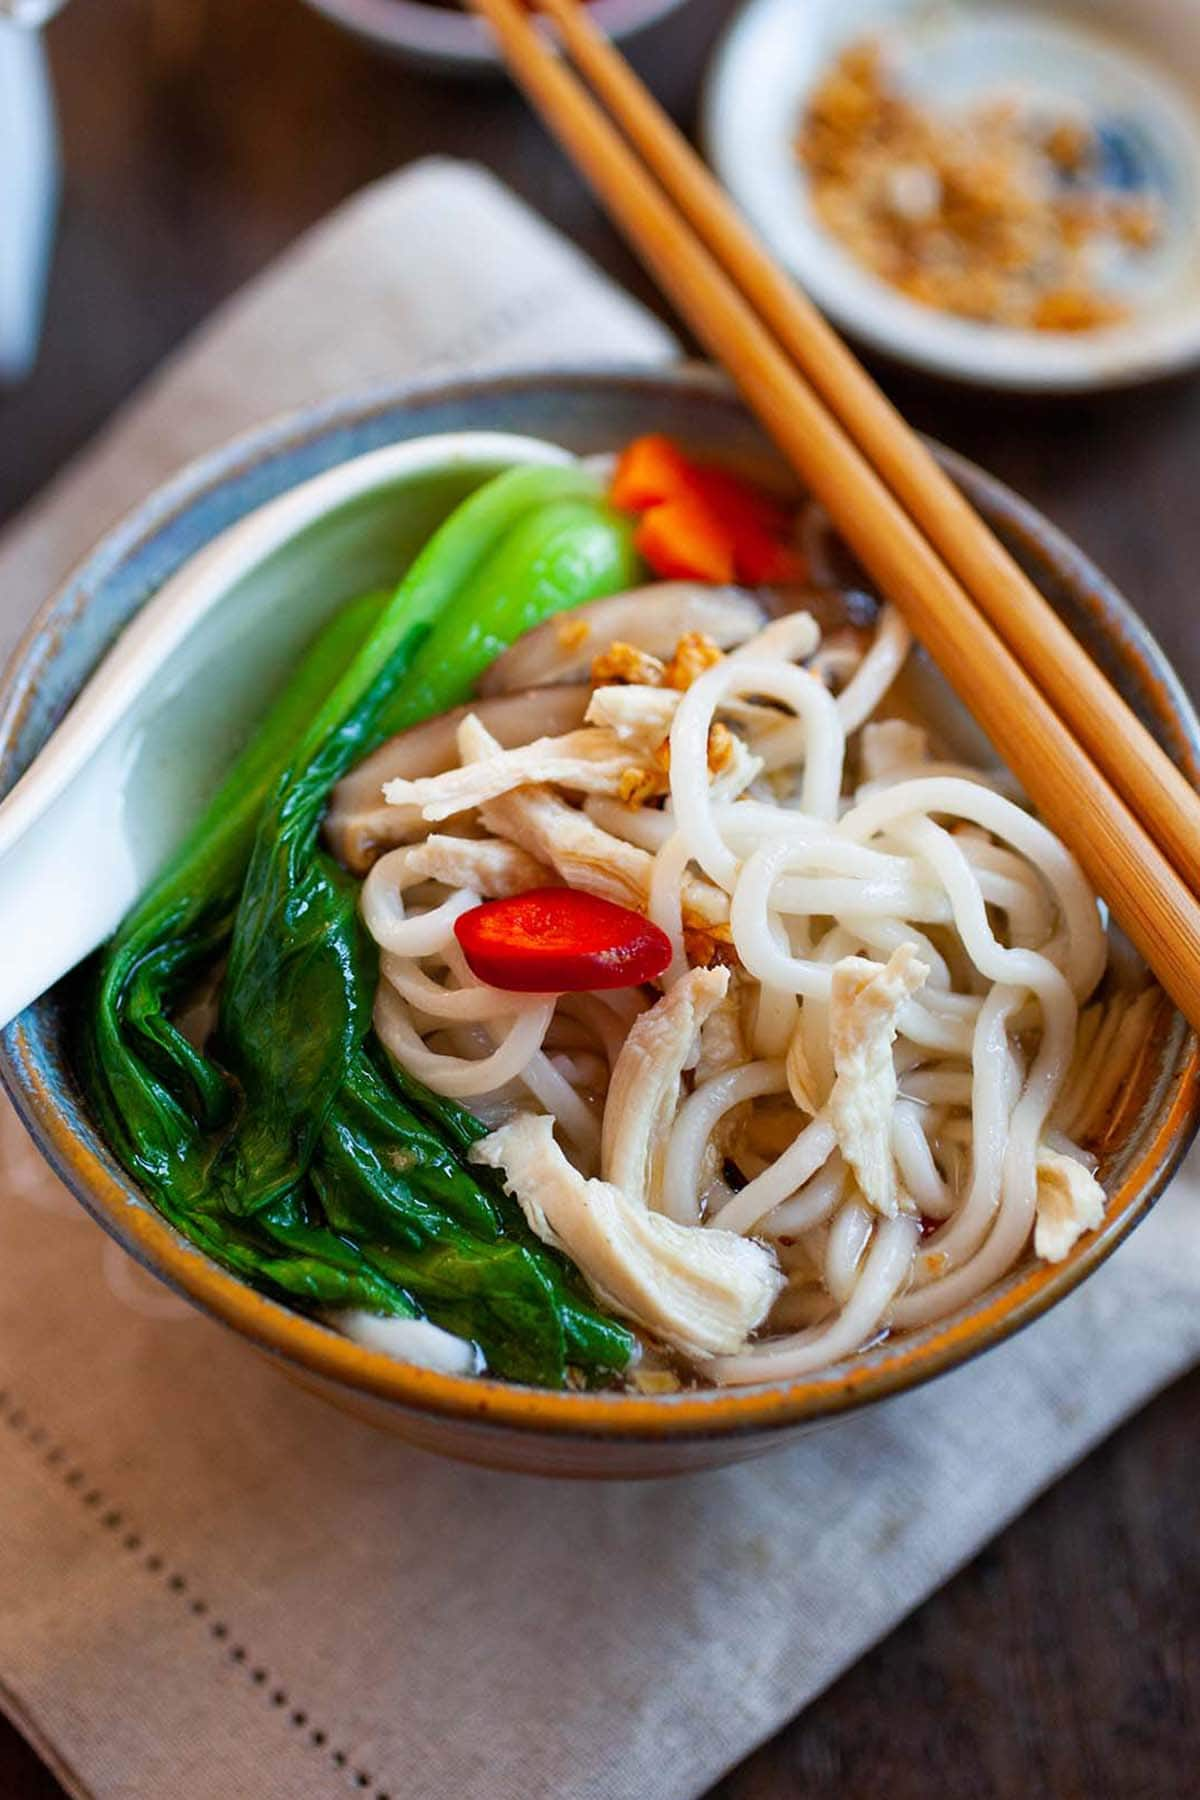 Chinese Chicken Noodle Soup with chicken broth, noodles and bok choy in a bowl.